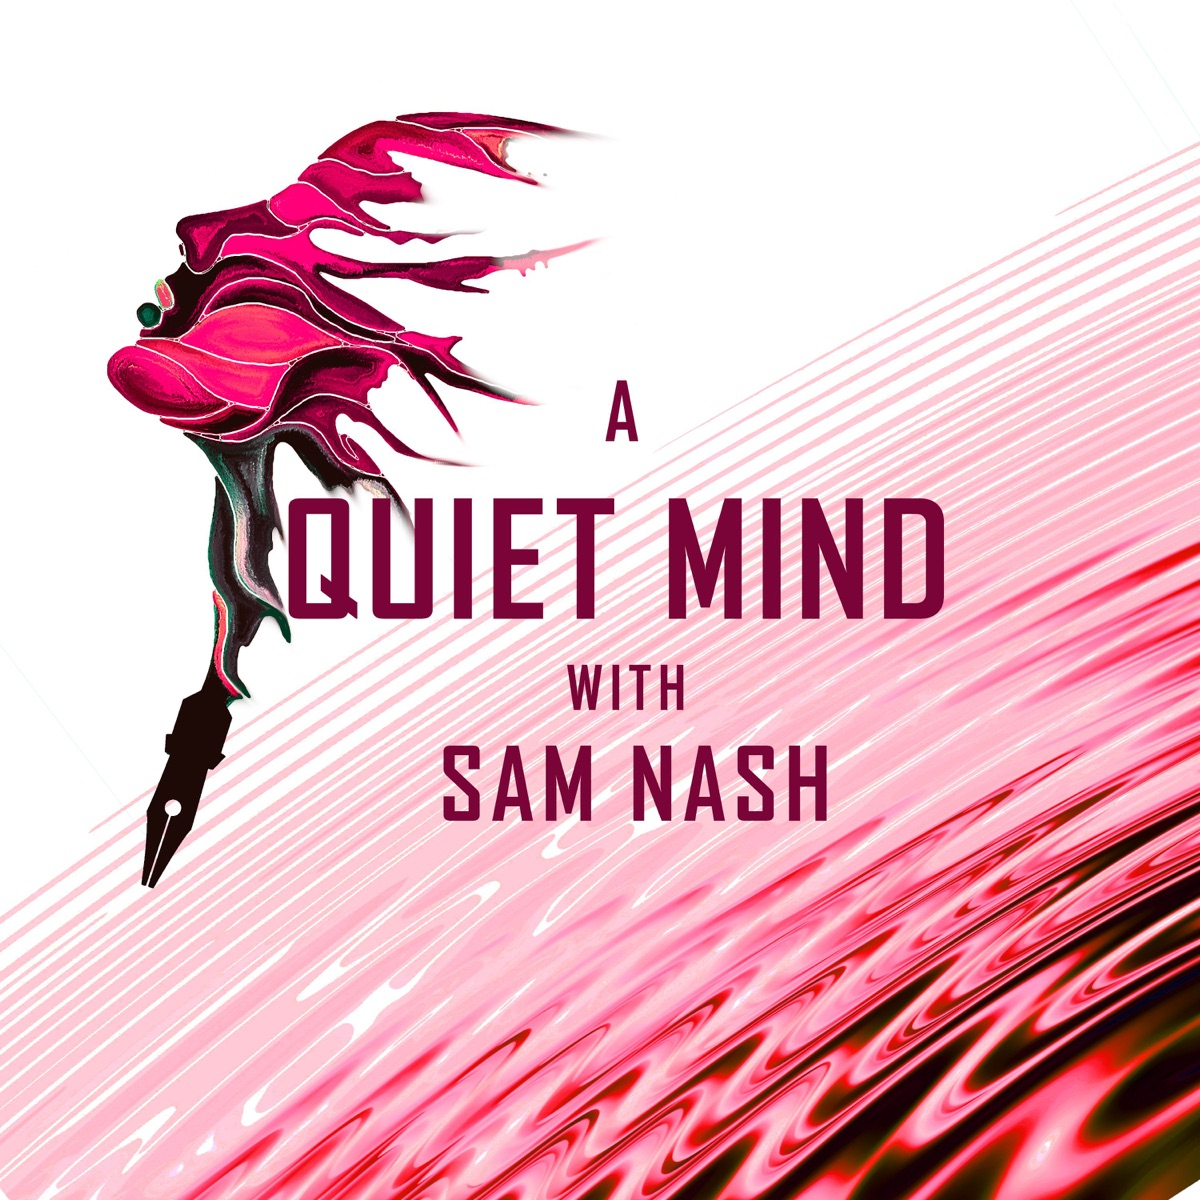 A Quiet Mind with Sam Nash